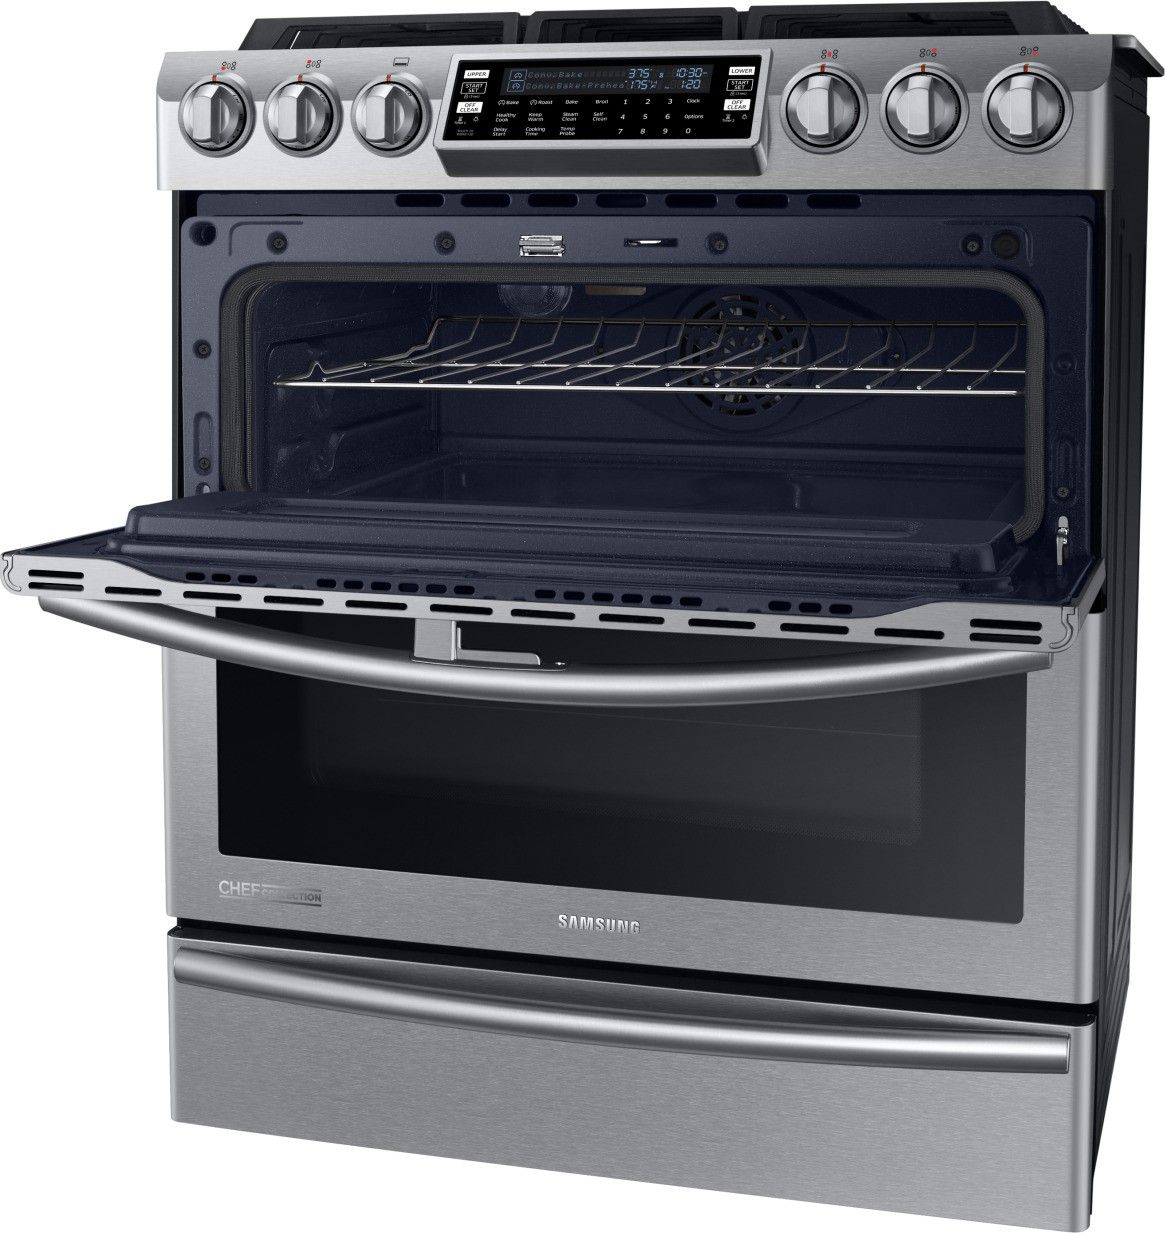 ny58j9850ws__samsung_chef_collection_dual_fuel_range_wdoor_in_door___stainless_steel_4